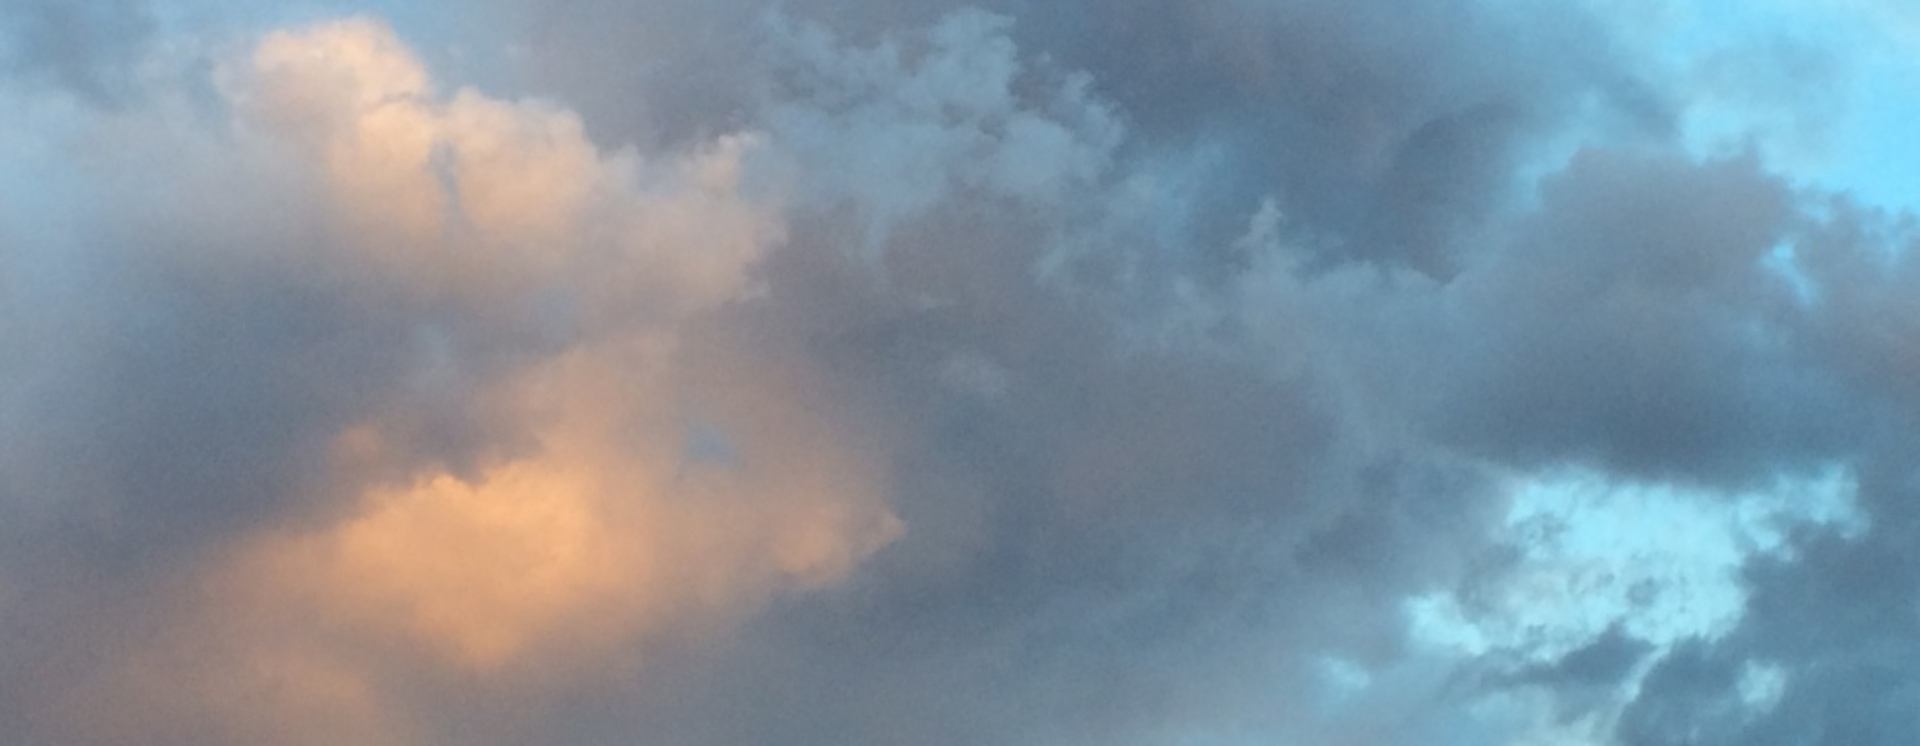 1419562975 wentzville sky 13 july 2014 copy